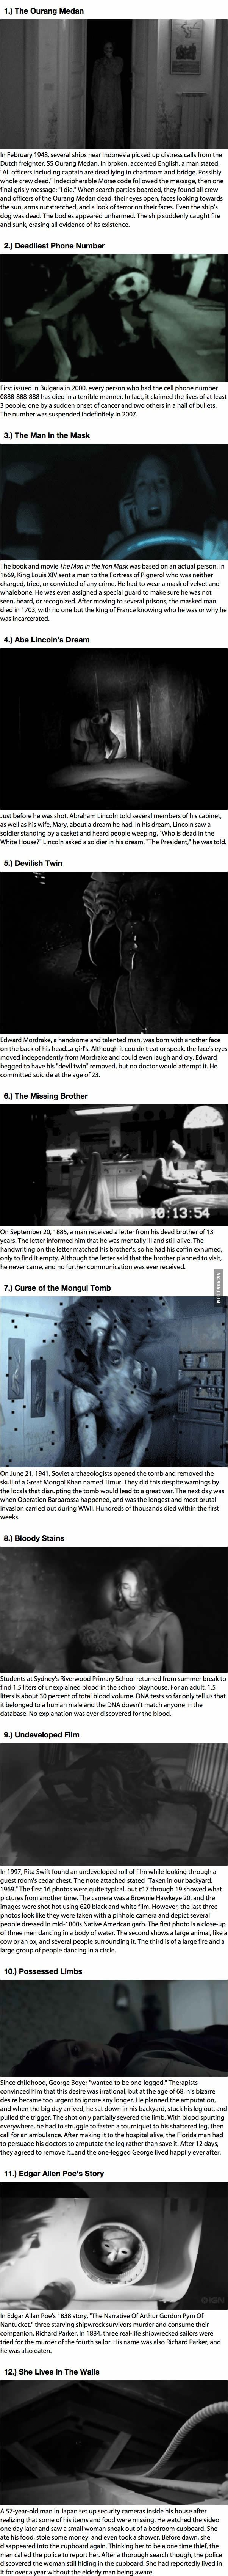 I'll Have To Leave Every Light On Tonight Because Of These 12 Creepy Stories!